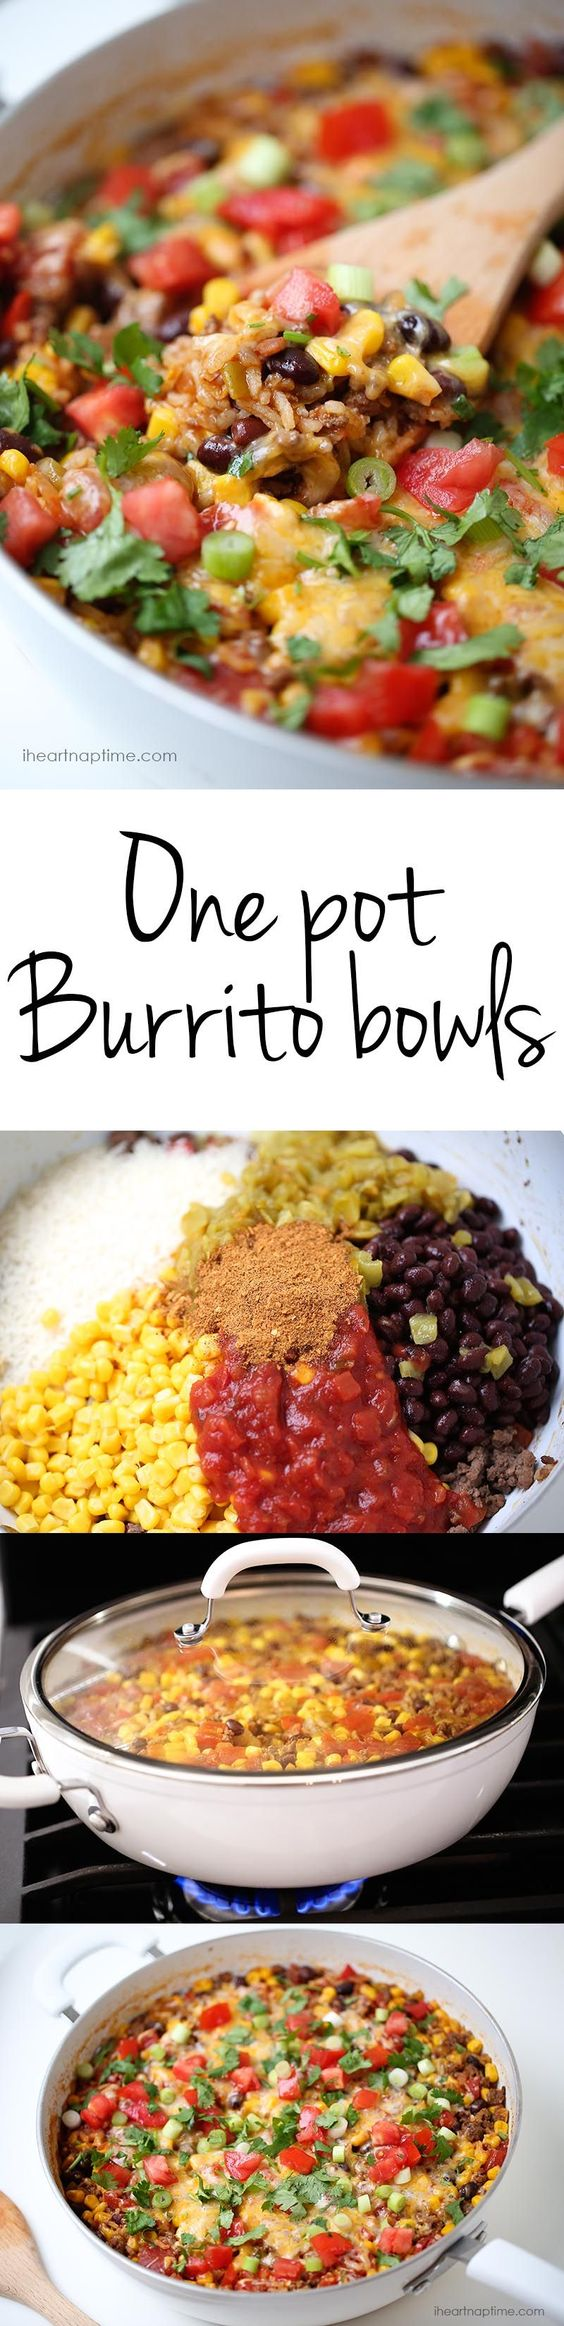 One pot burrito bowls recipe- easy and delicious one pot meal! This dinner recipe is made in one pot in 30 minutes ...making clean up a breeze. Perfect for busy week nights! #onepot #onepotmeals #onepotrecipes #onepotsuppers One Pot Burrito Bowls Lunch or Dinner Recipe |  i heart naptime